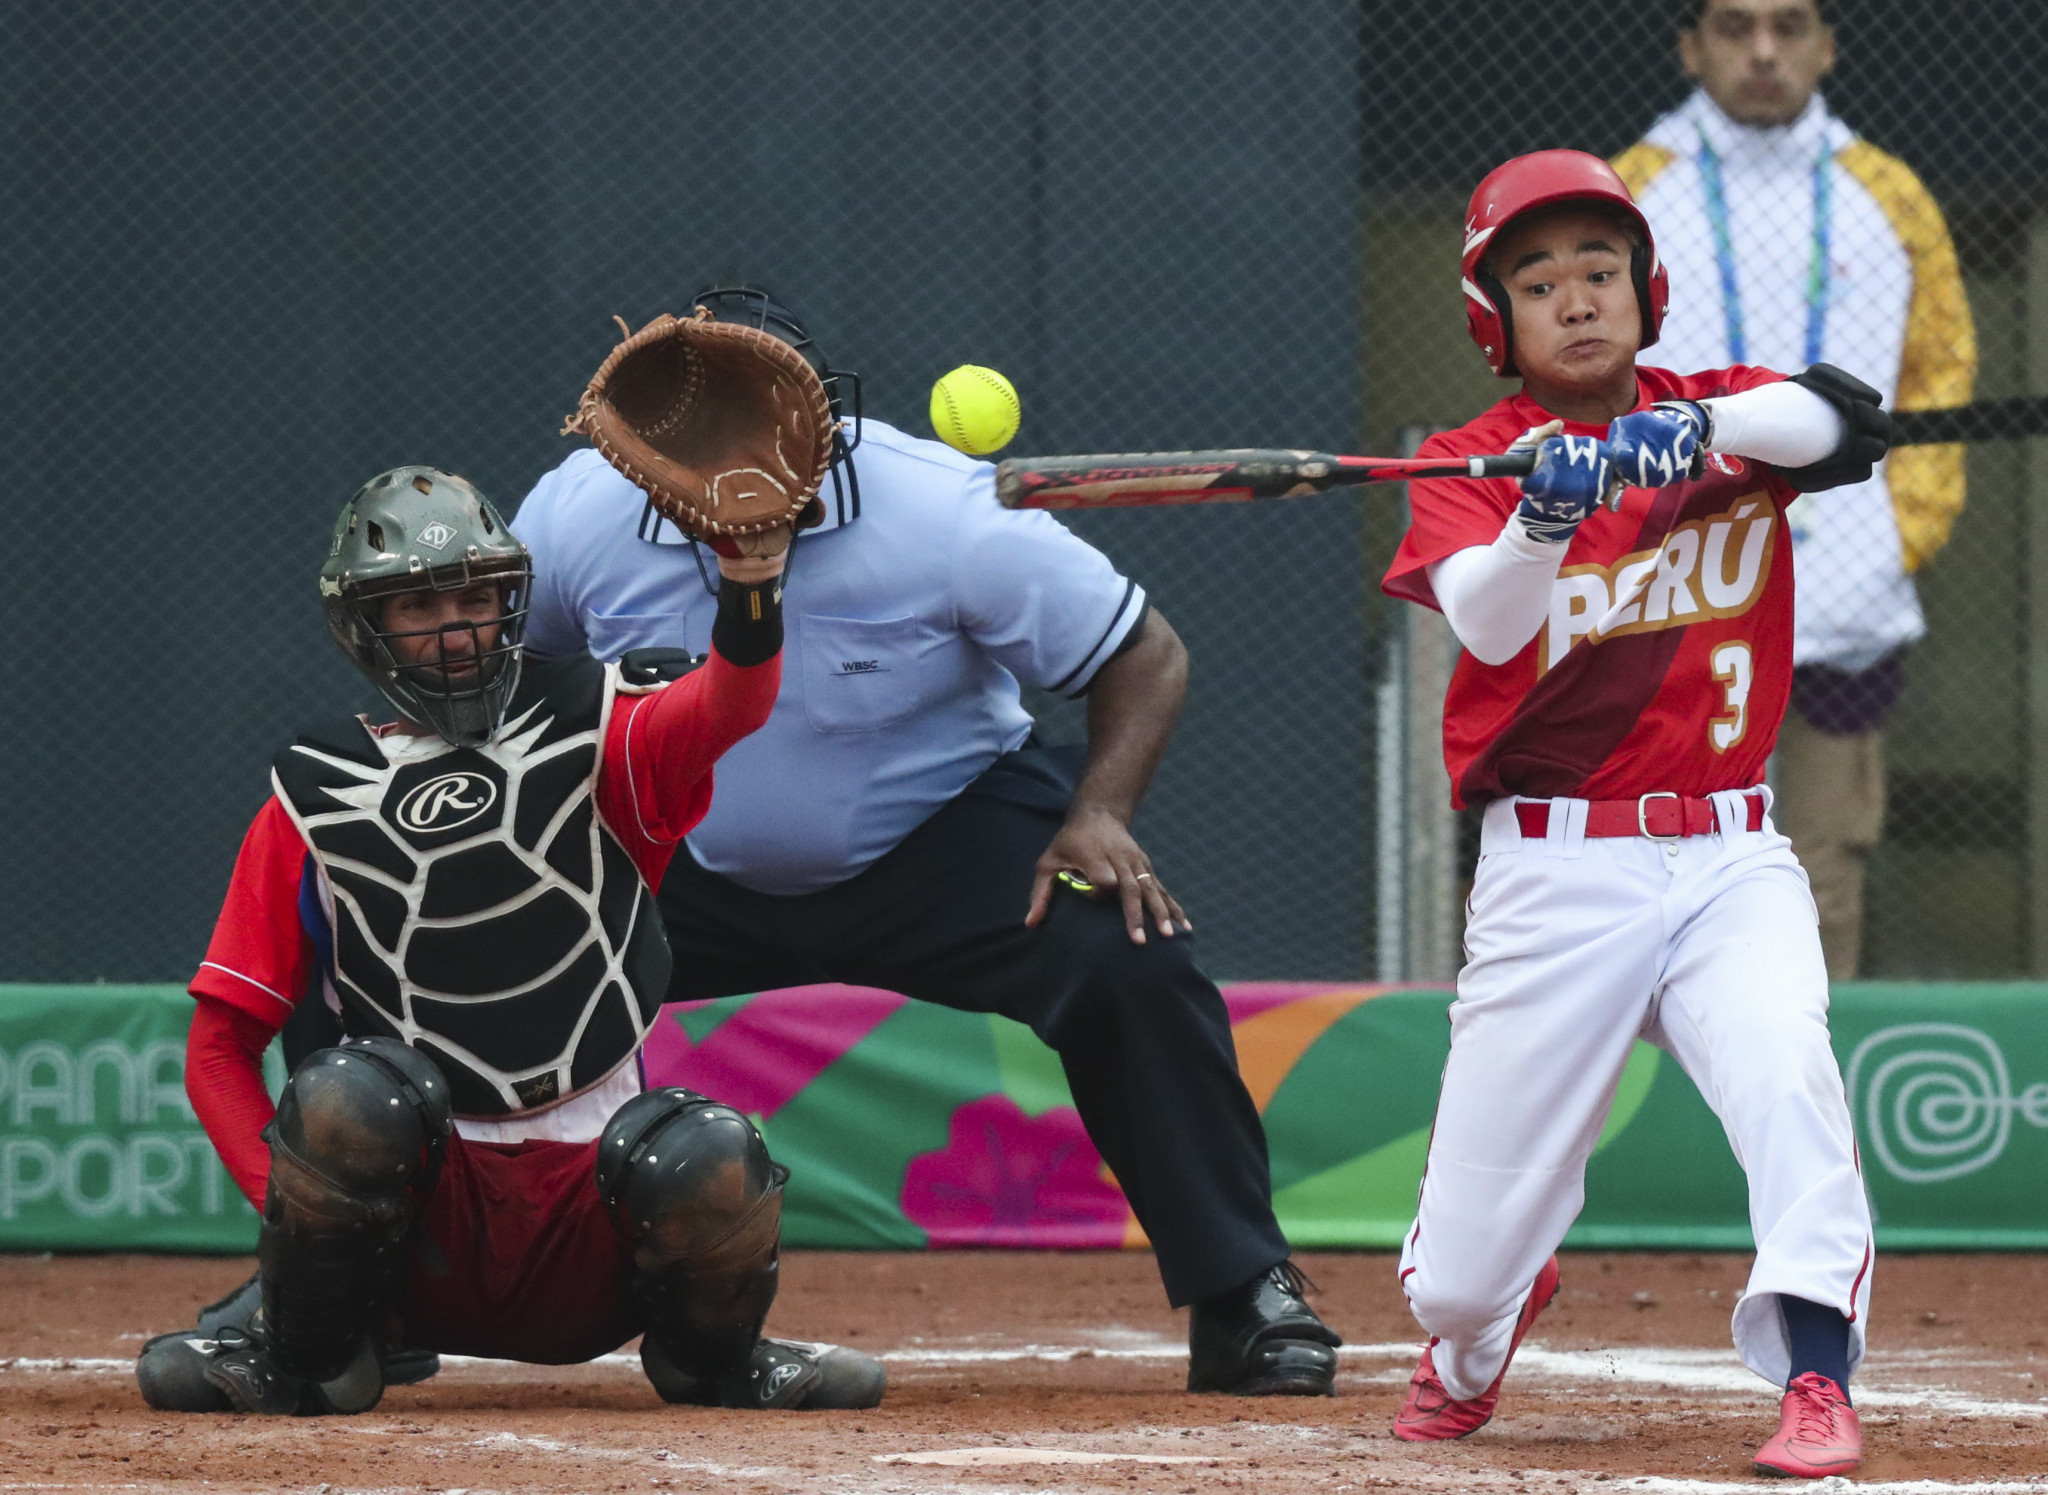 Hosts suffer crushing softball defeat while world champions Argentina triumph at Lima 2019